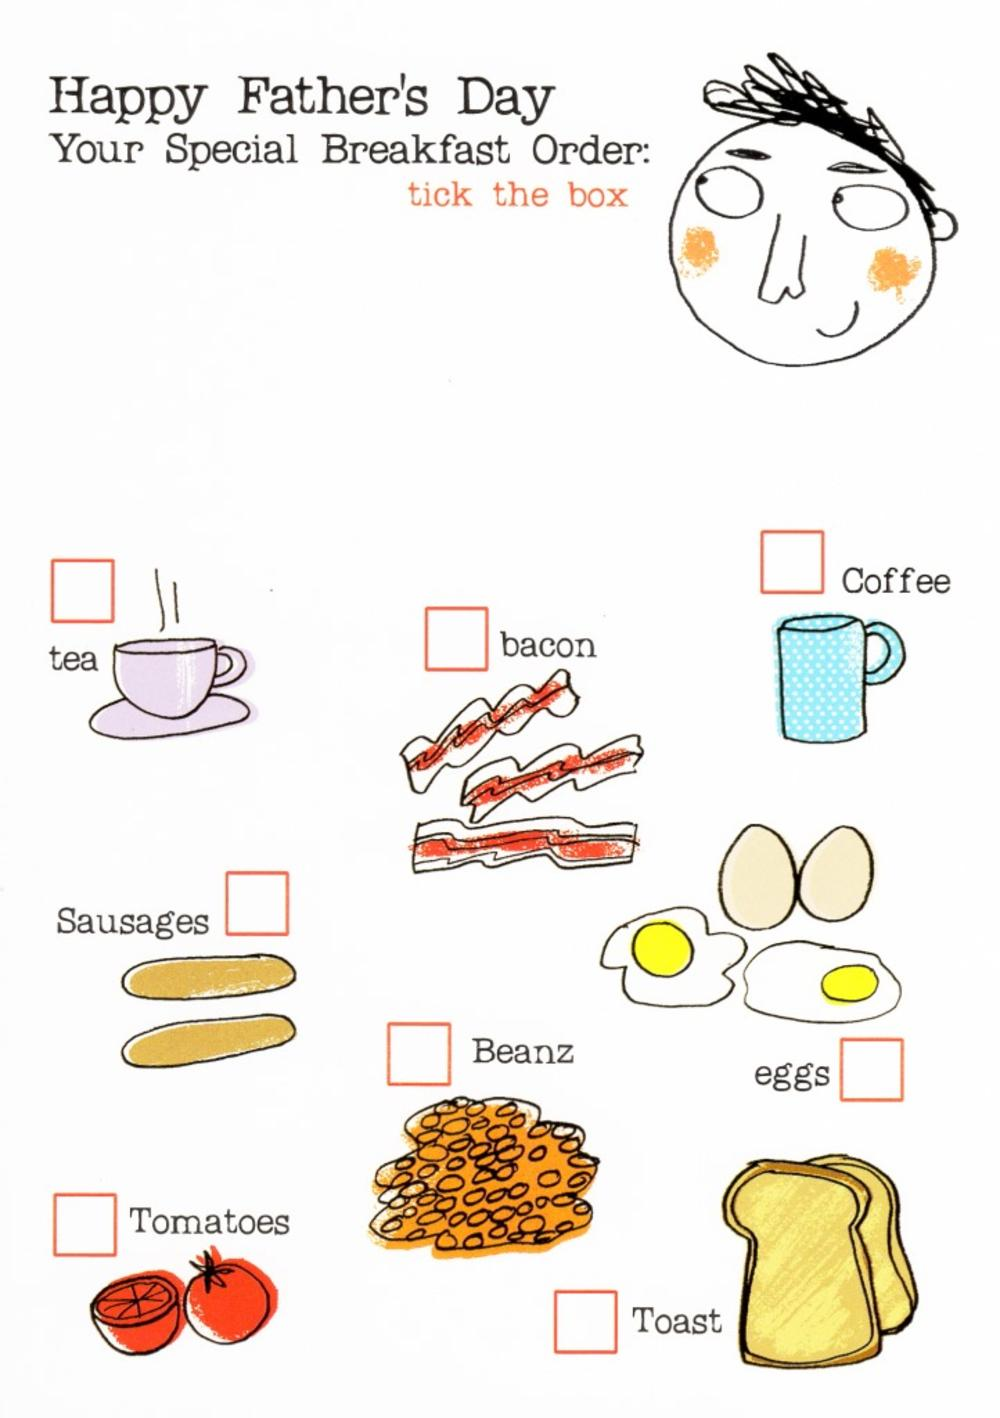 Special Breakfast Order Happy Father's Day Card